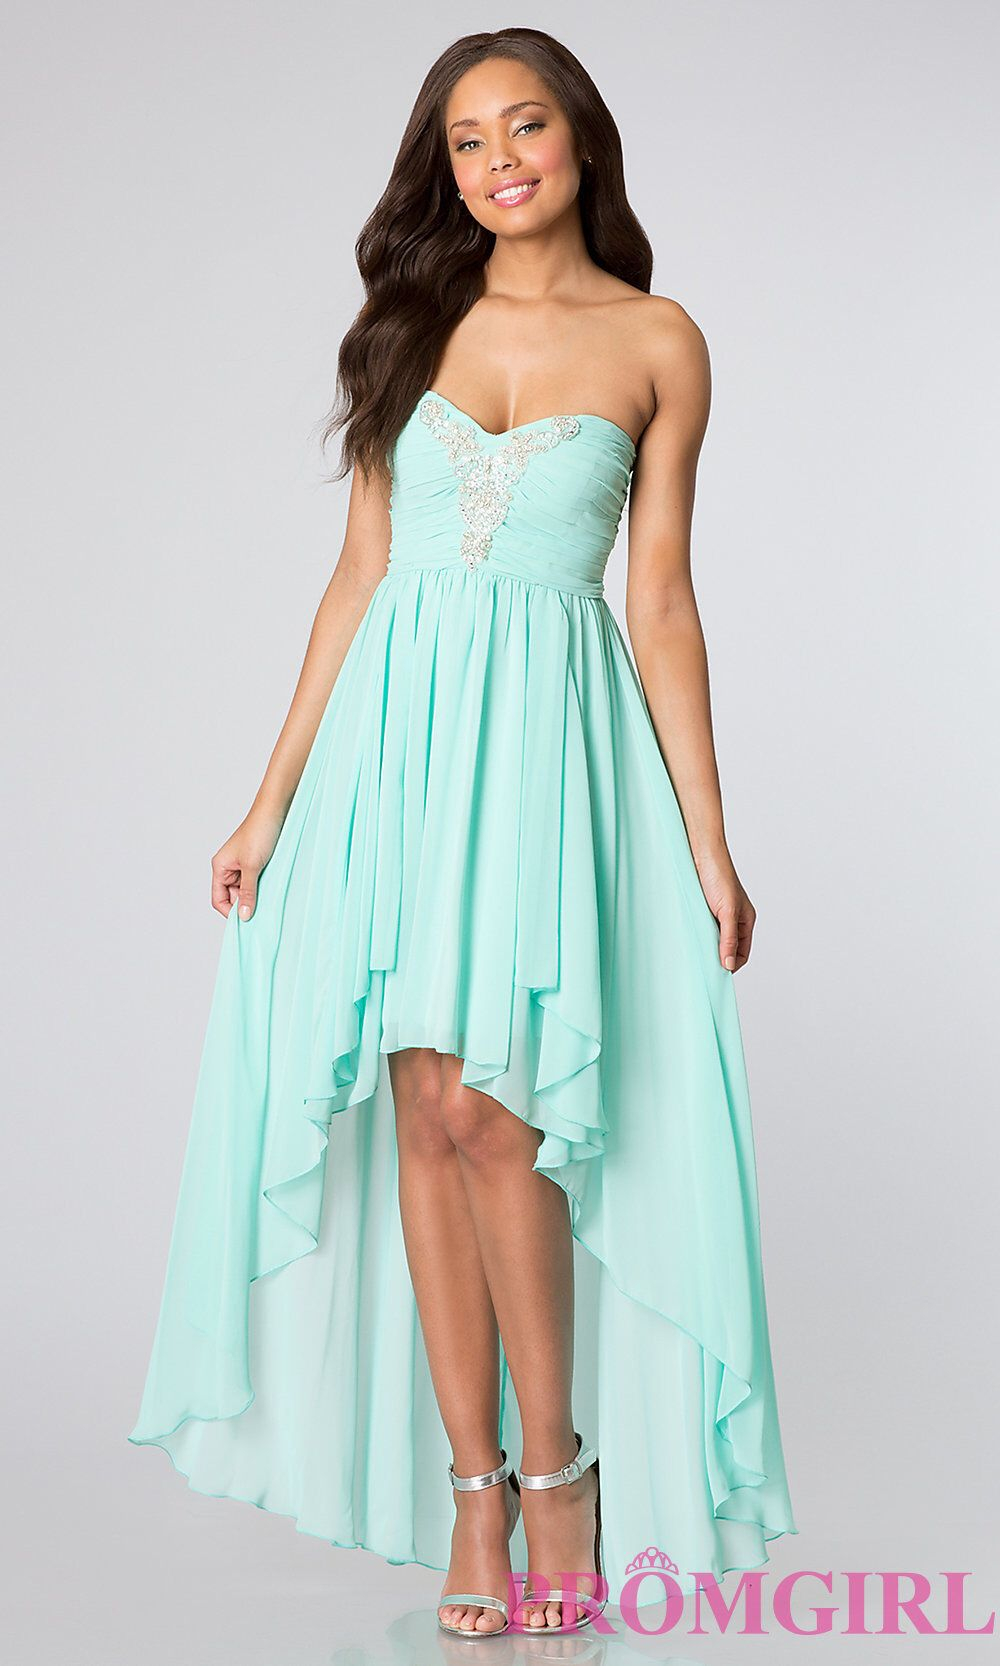 Bling on top dress, Short in front but long in back! | Dresses ...